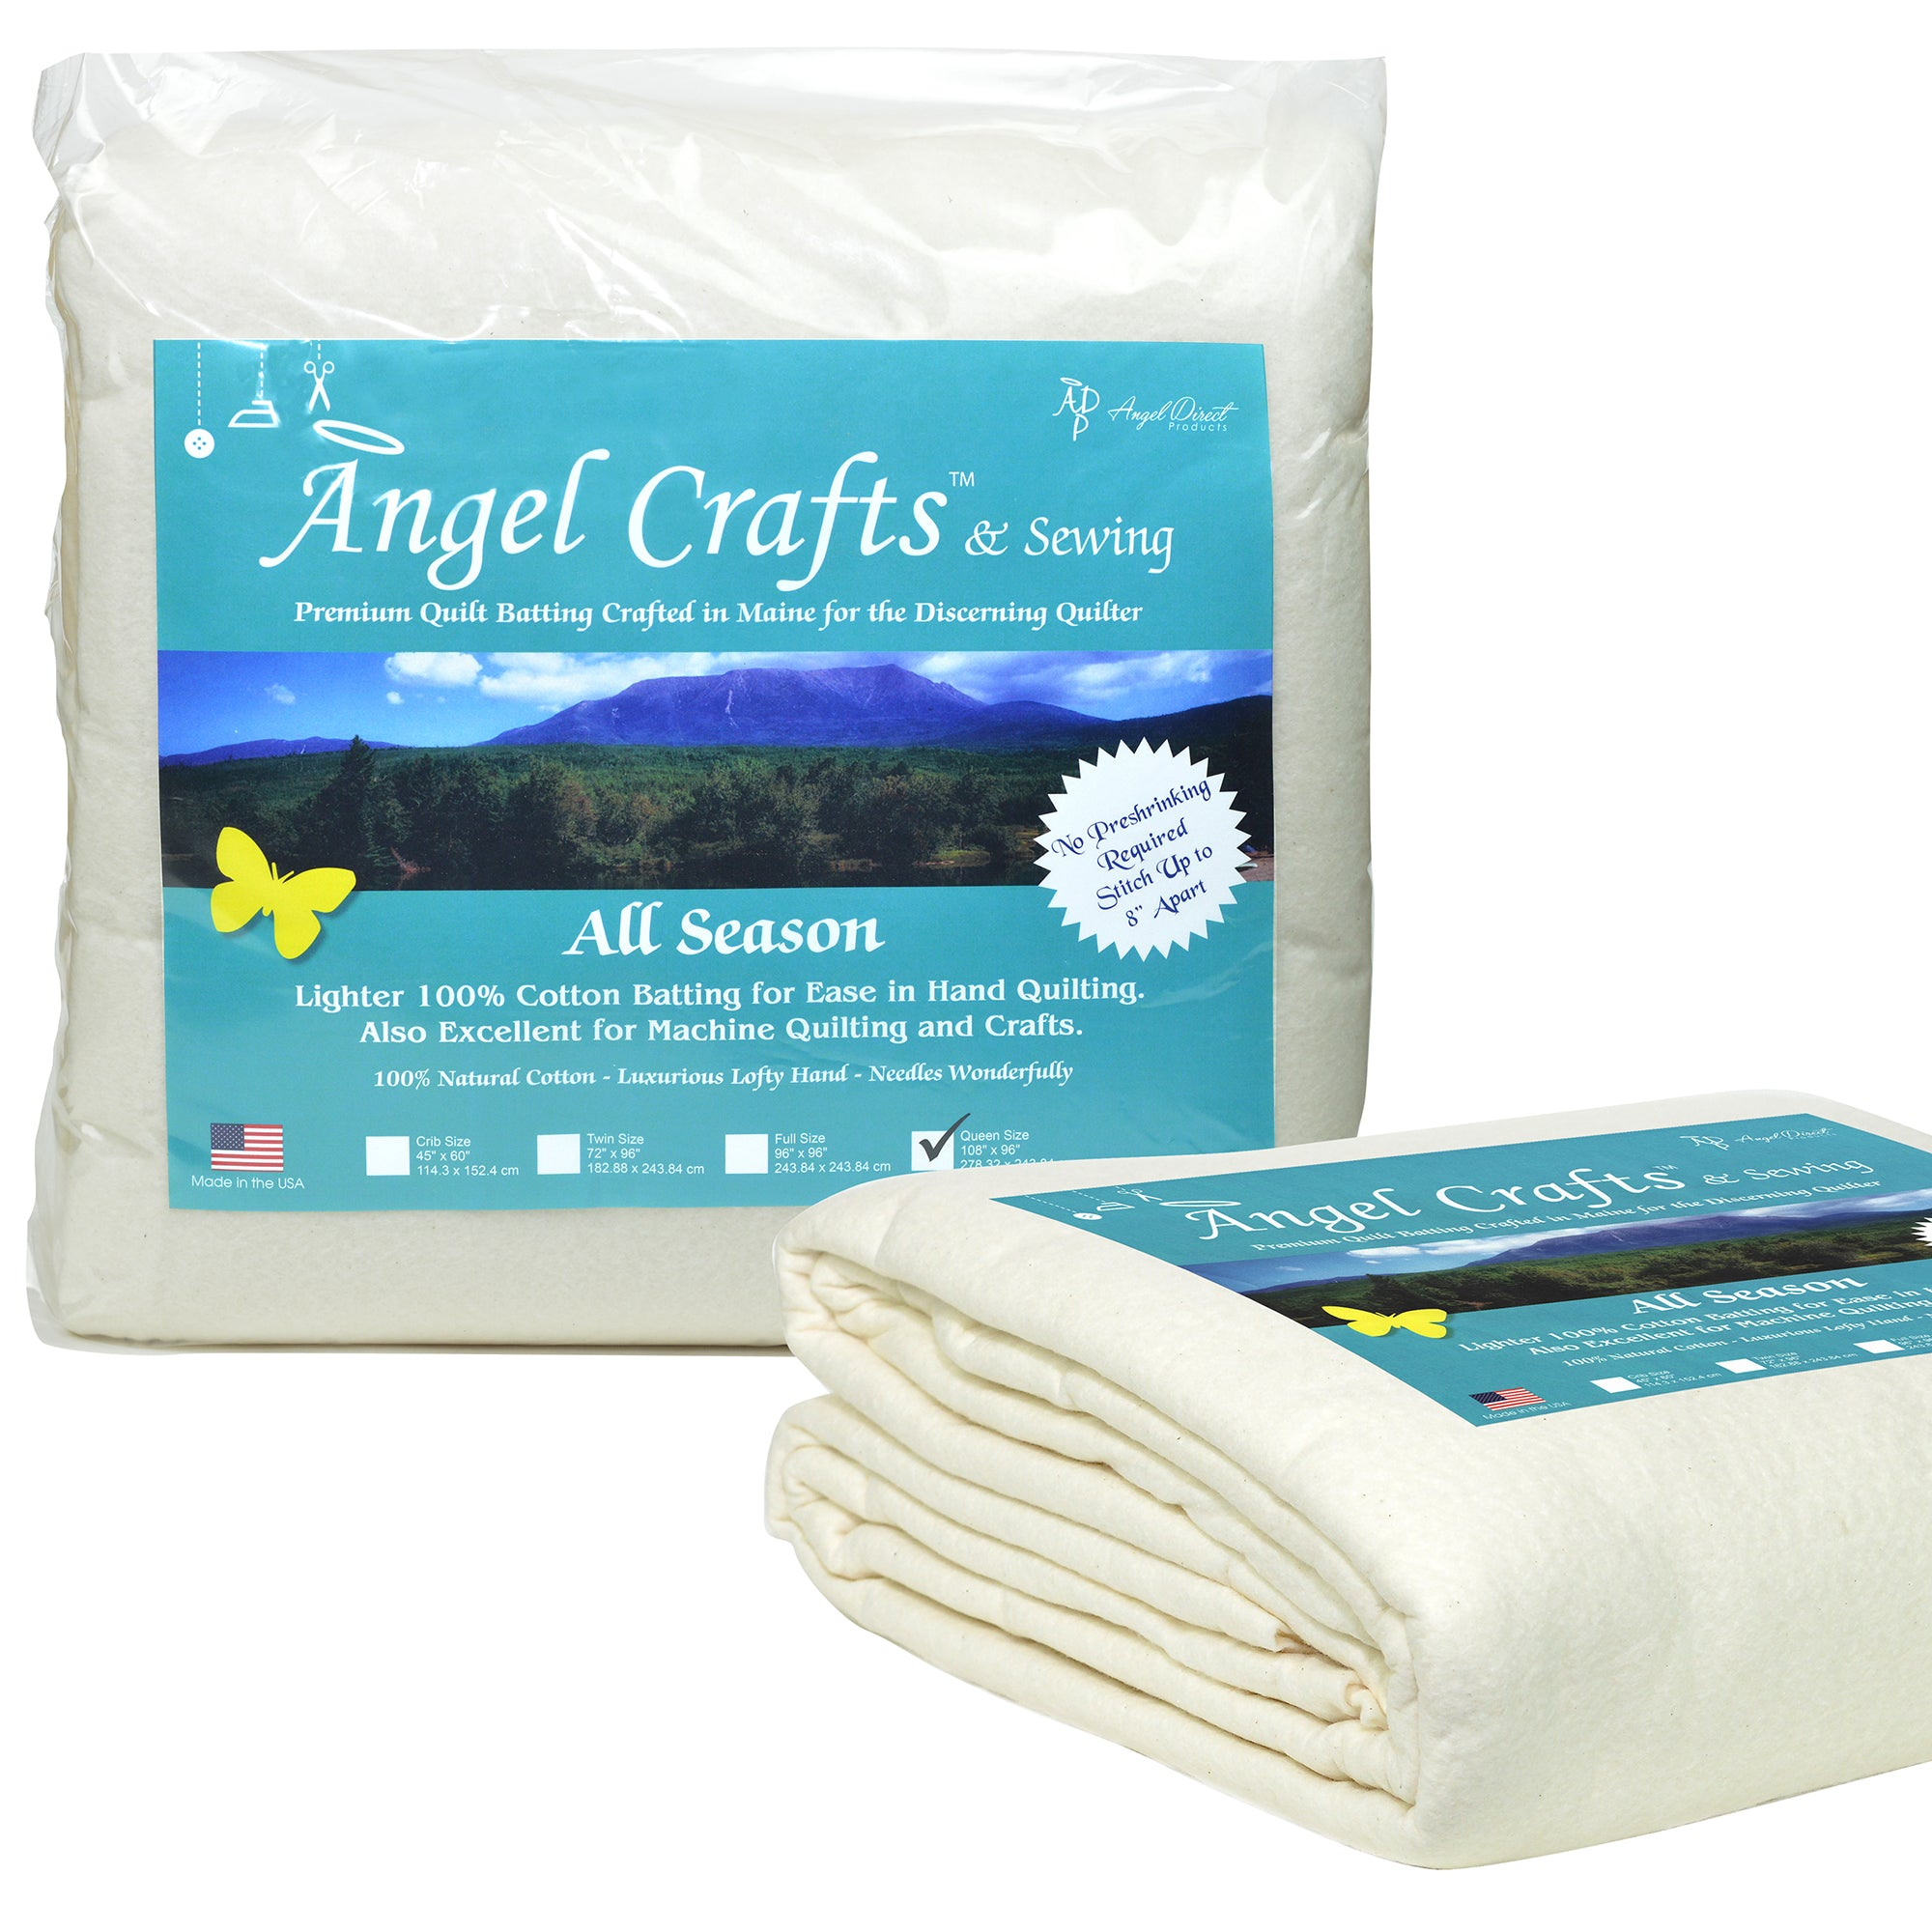 "Angel Crafts & Sewing PREMIUM 100% NATURAL Cotton Batting for Quilts - Queen Size (108"" x 96"") - BEST All Season Low Loft Fabric Roll for Upholstery, Quilting, Applique, Pillows"